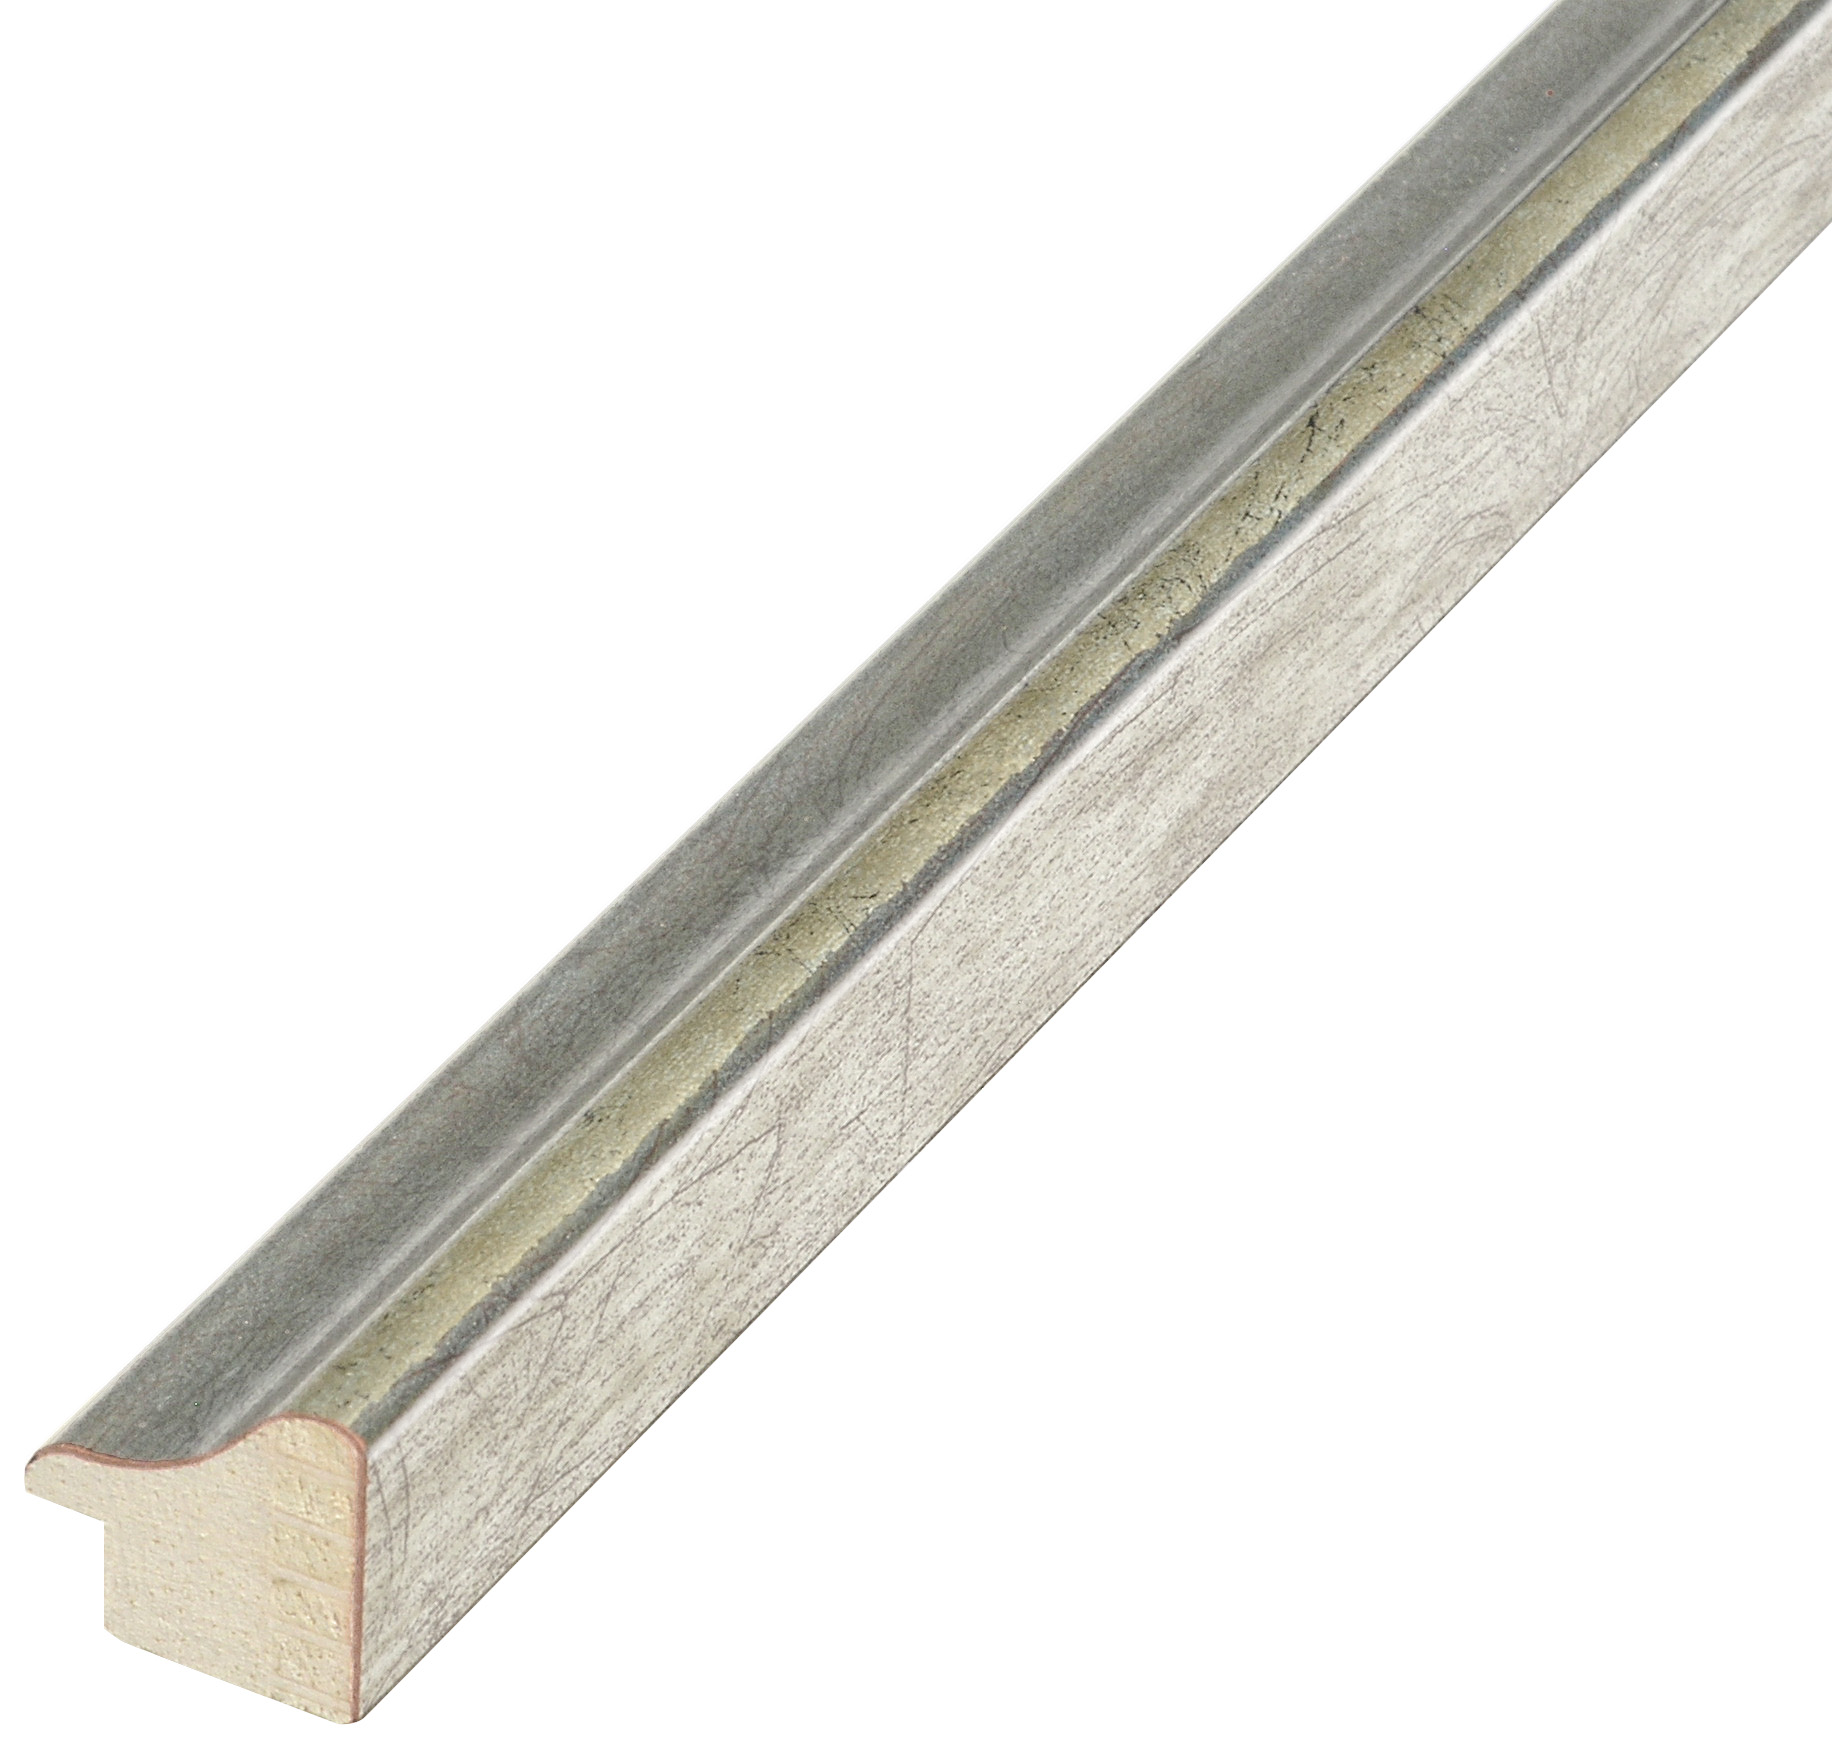 Moulding ayous, width 23mm height 22 - silver finish